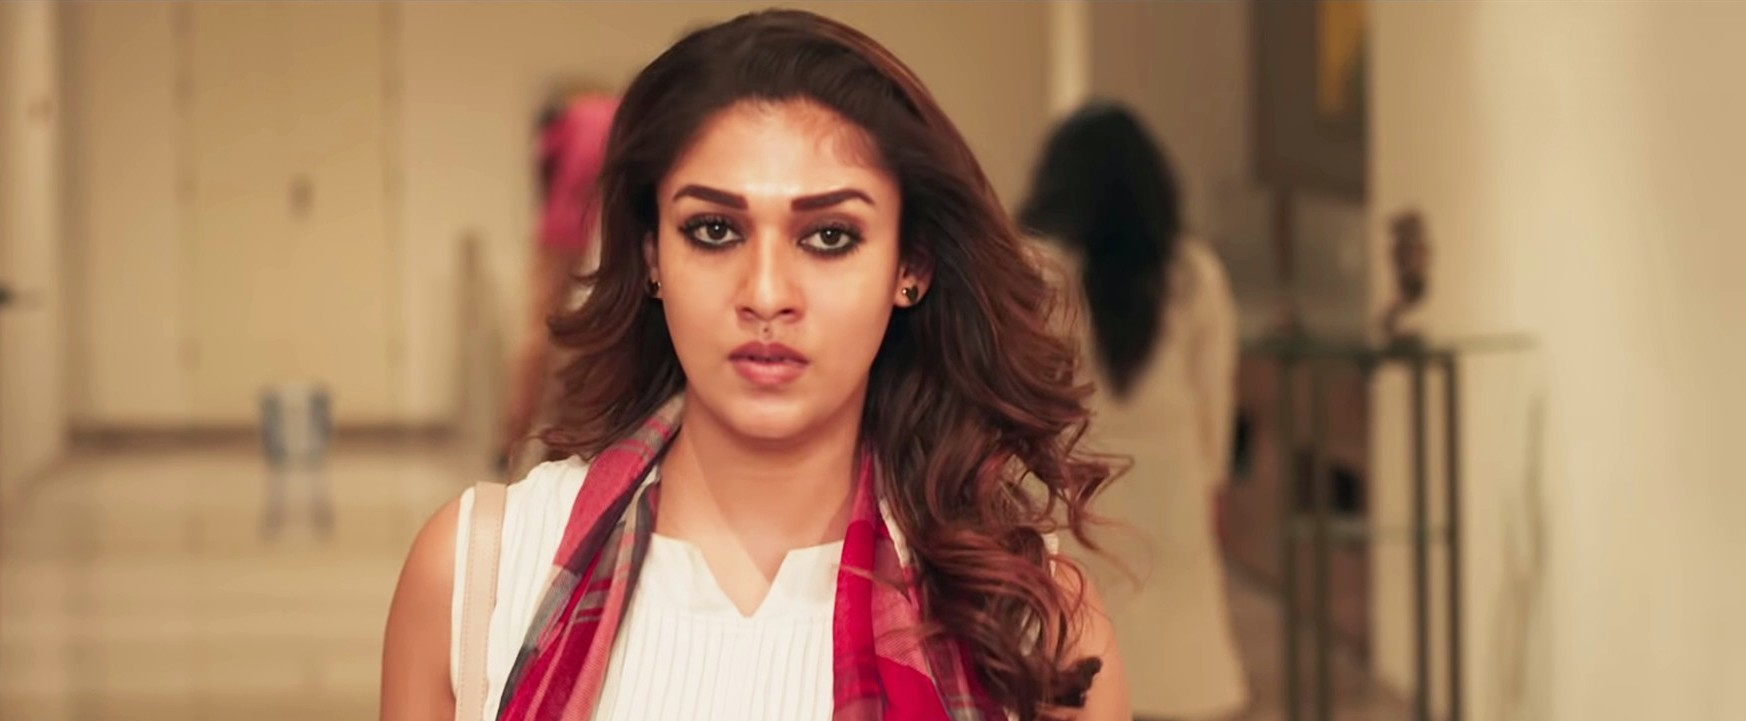 actress-nayanthara-airaa-movie-images-hd-4